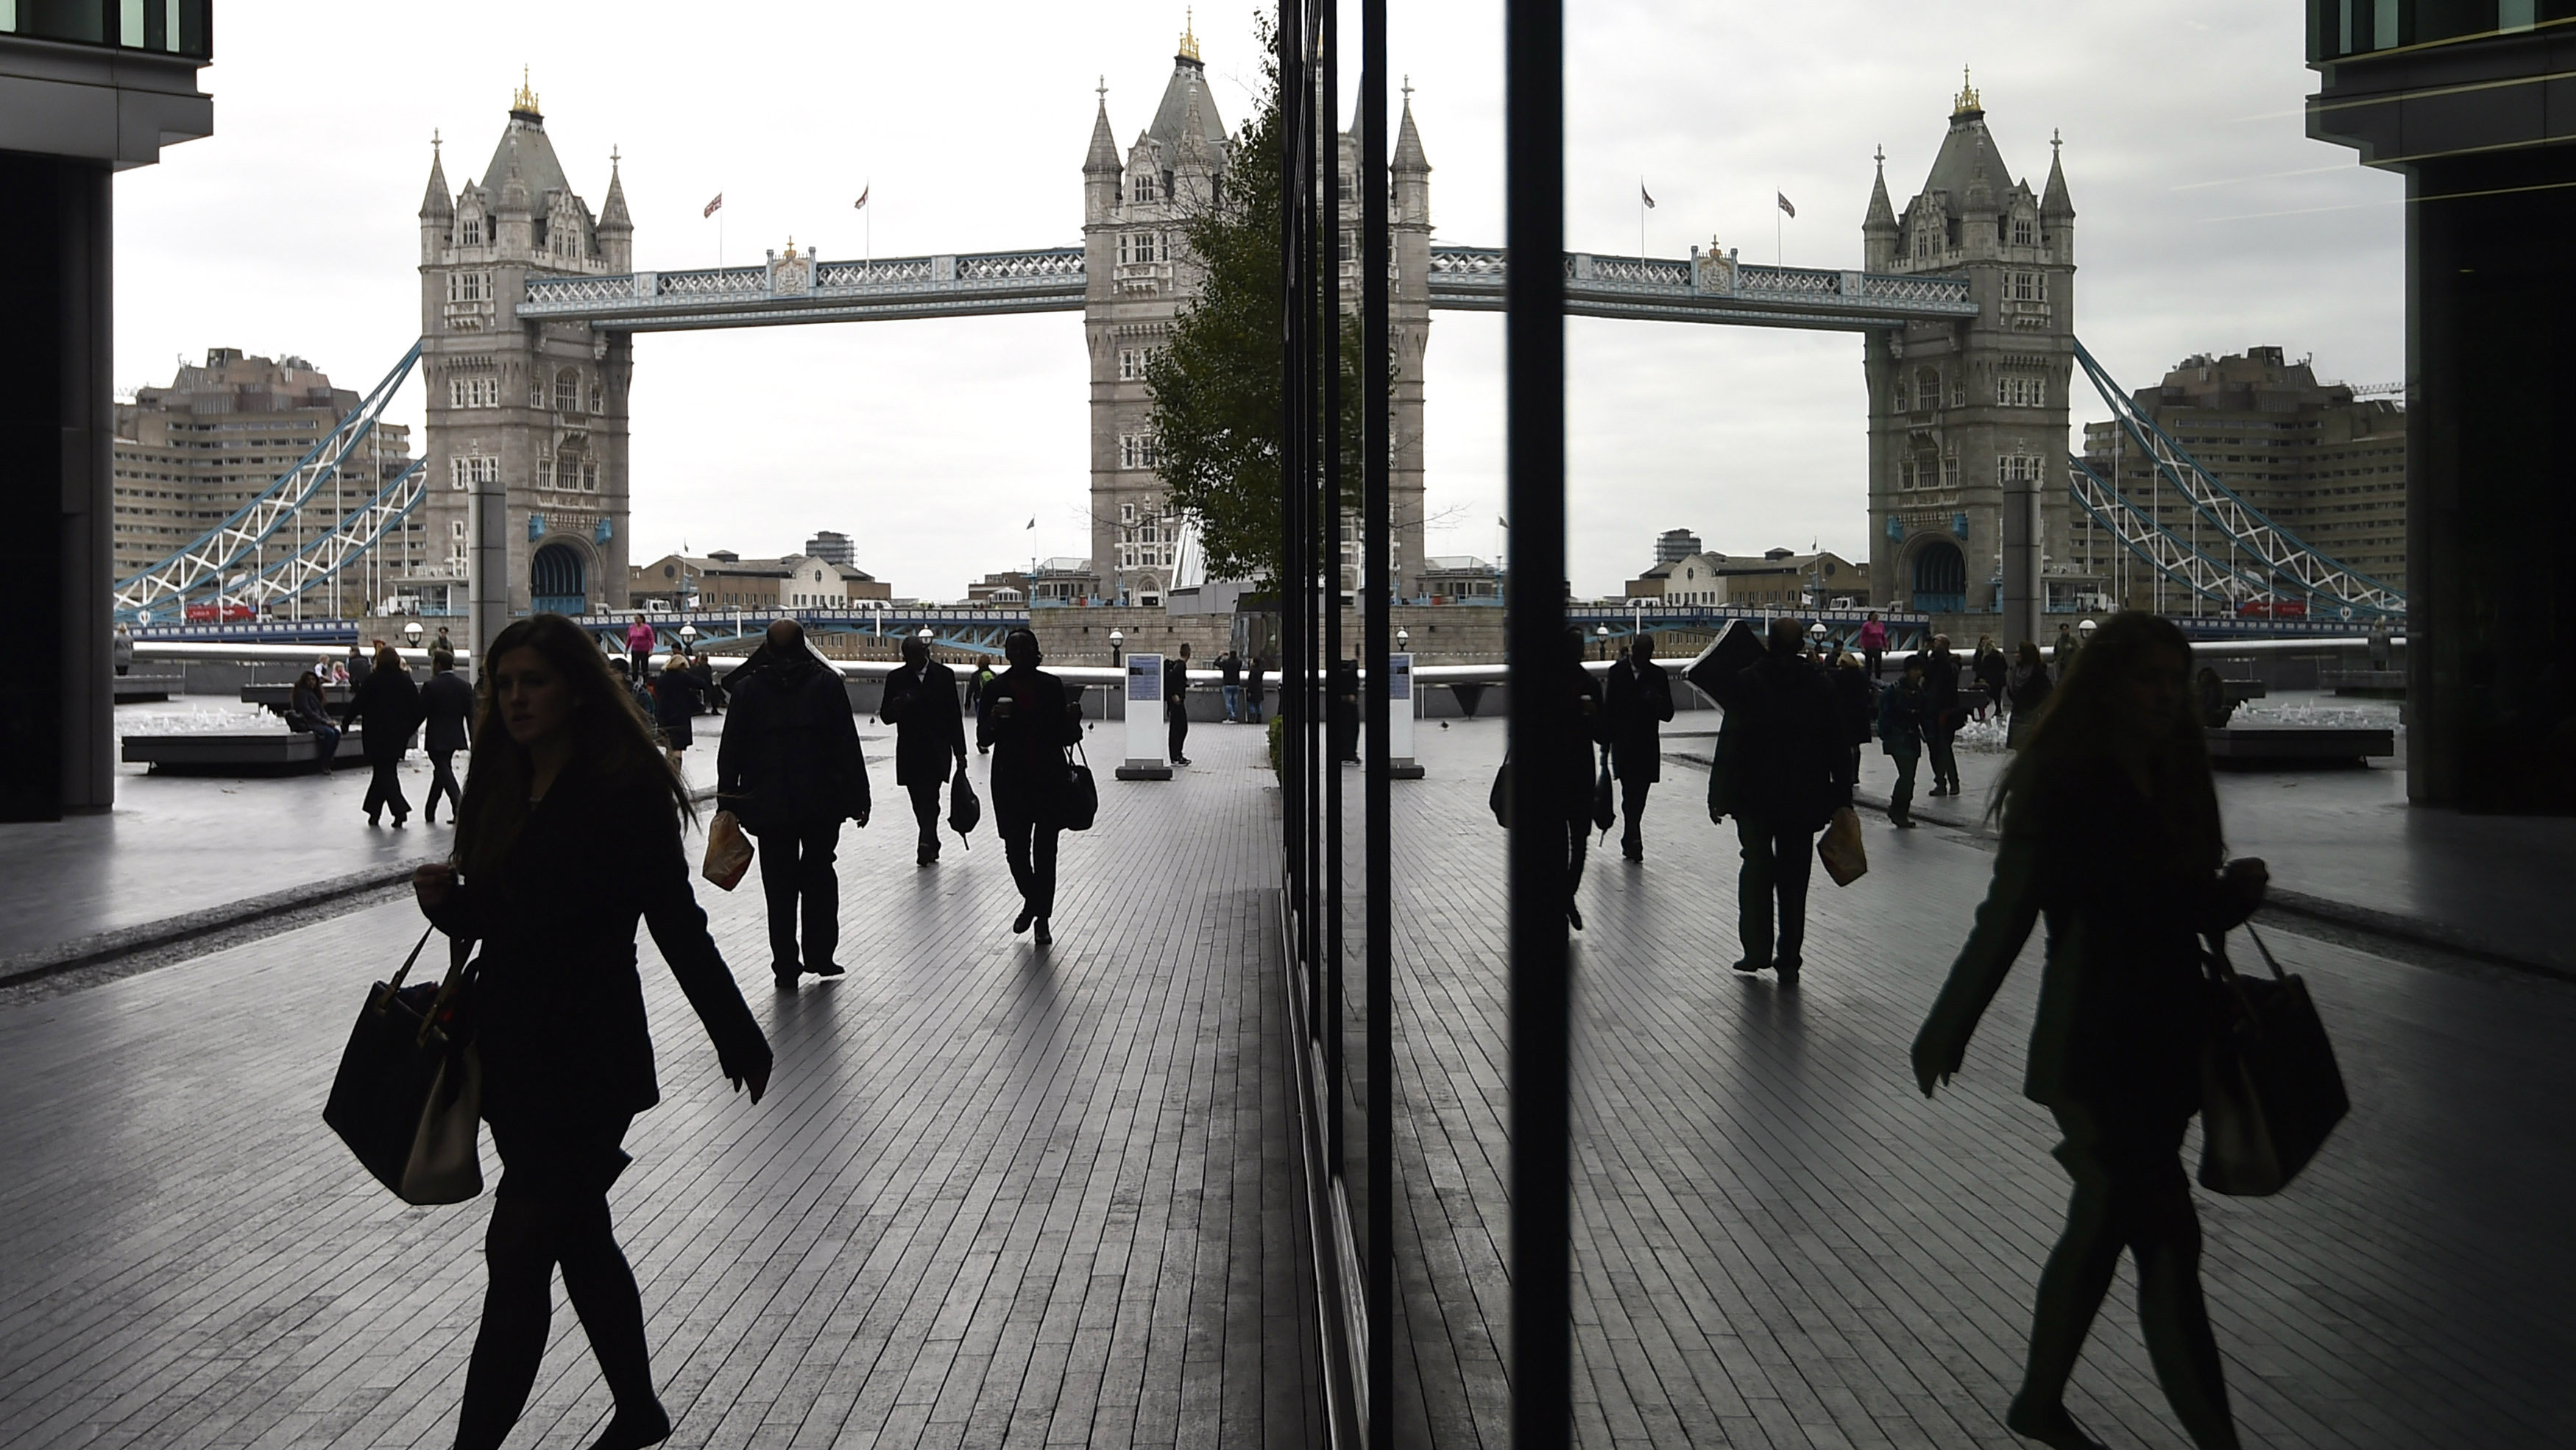 Workers walk through the More London business district with Tower Bridge seen behind in London, November 11, 2015. REUTERS/Toby Melville